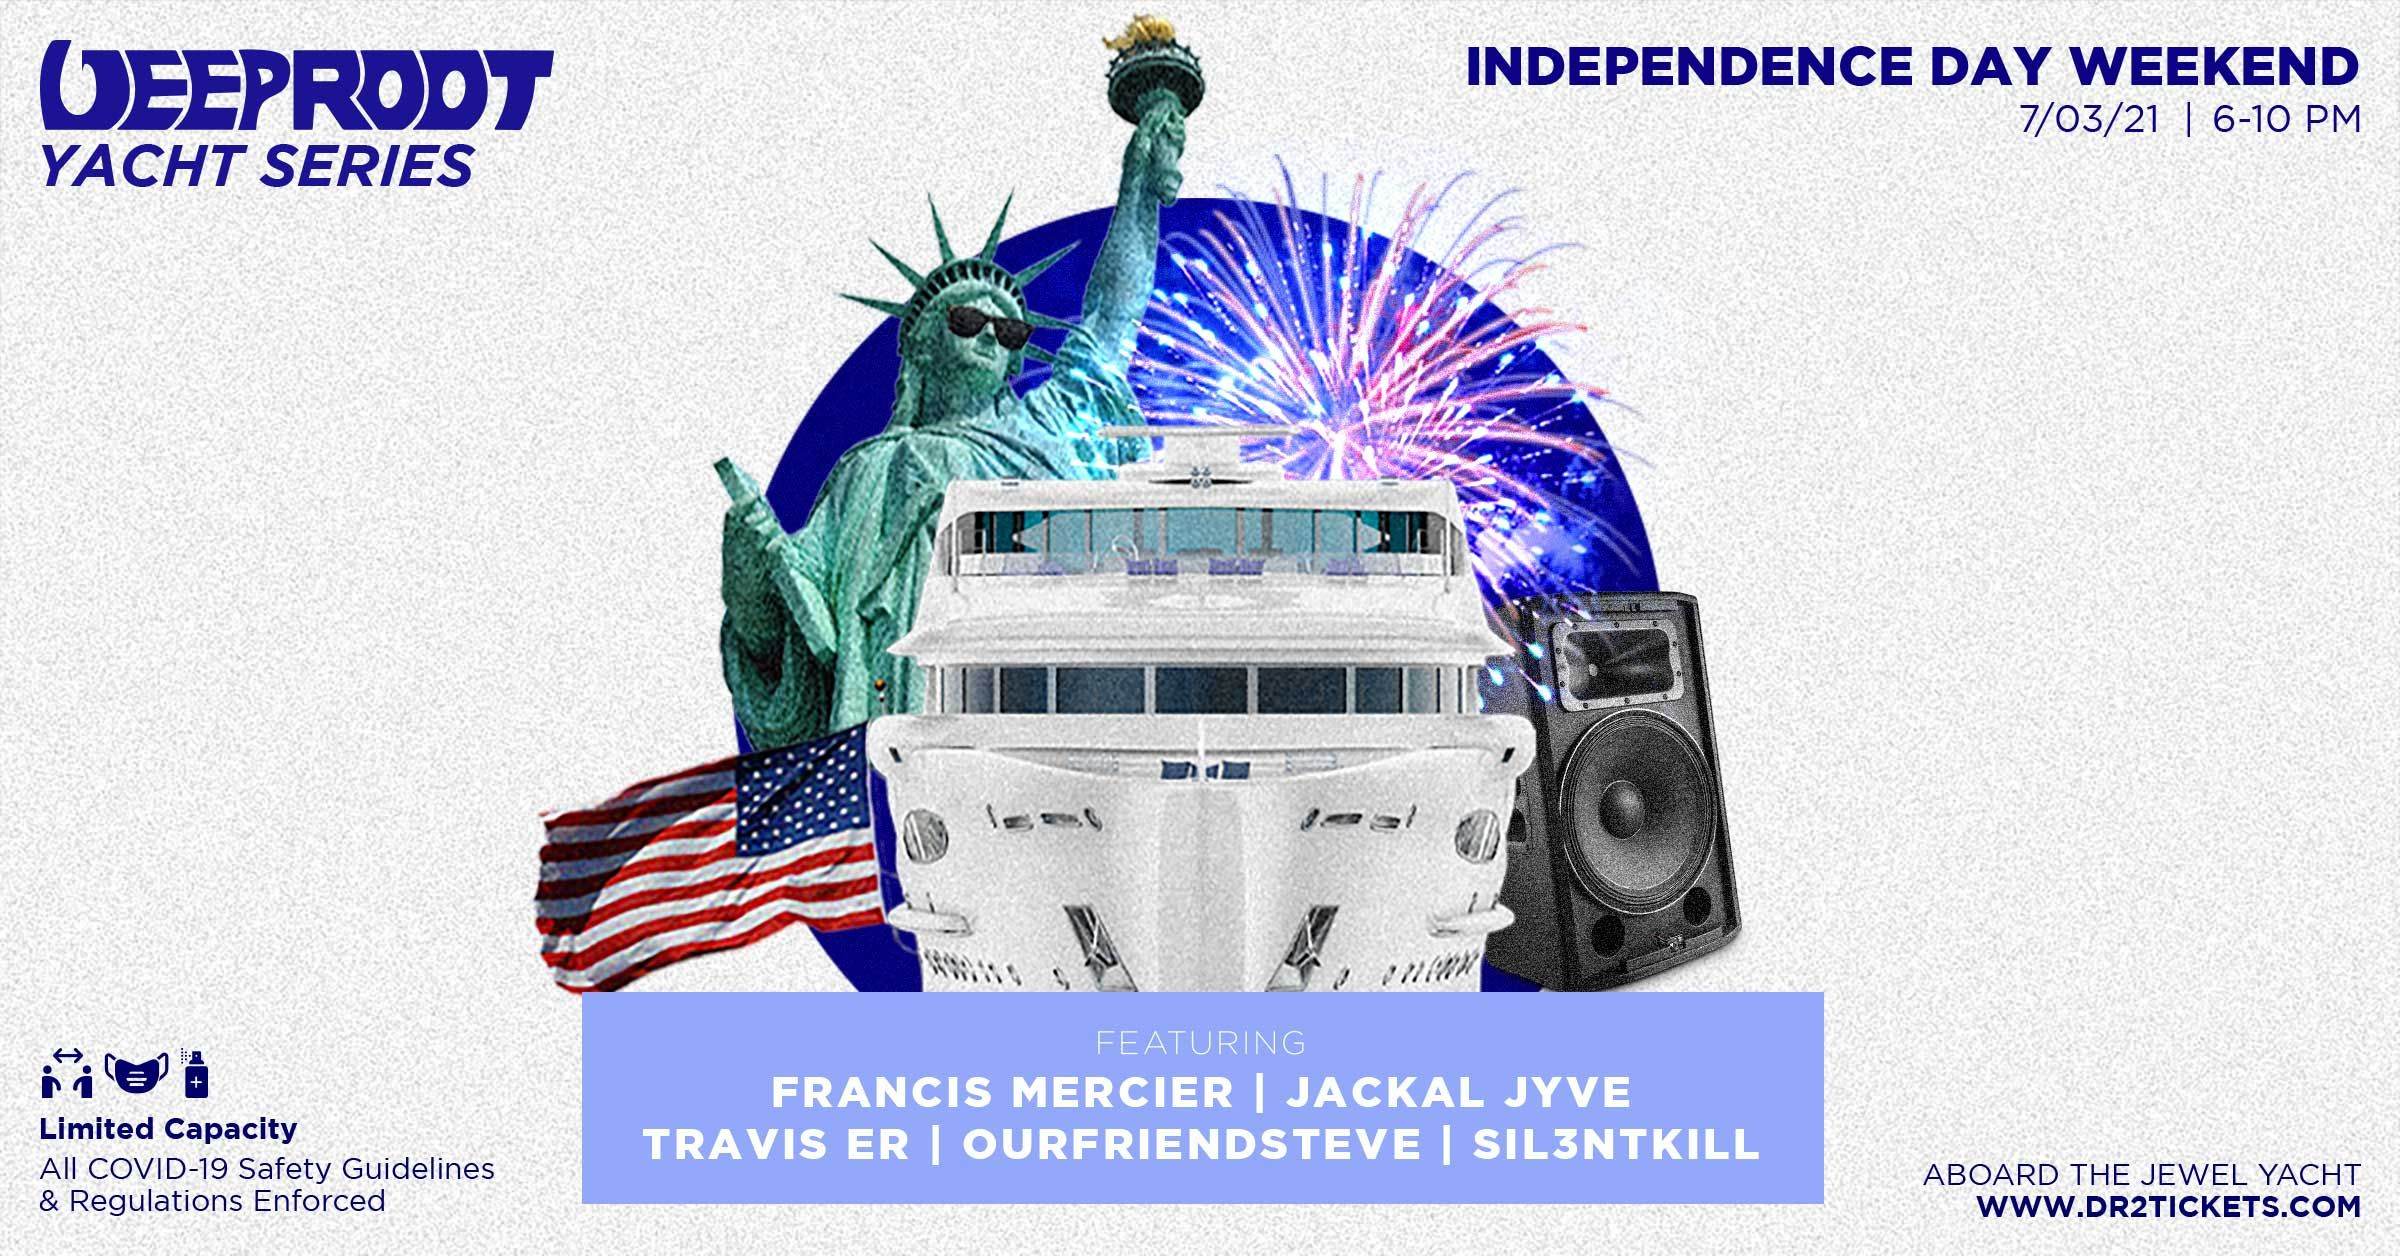 Independence Day Weekend Yacht Cruise 7/3